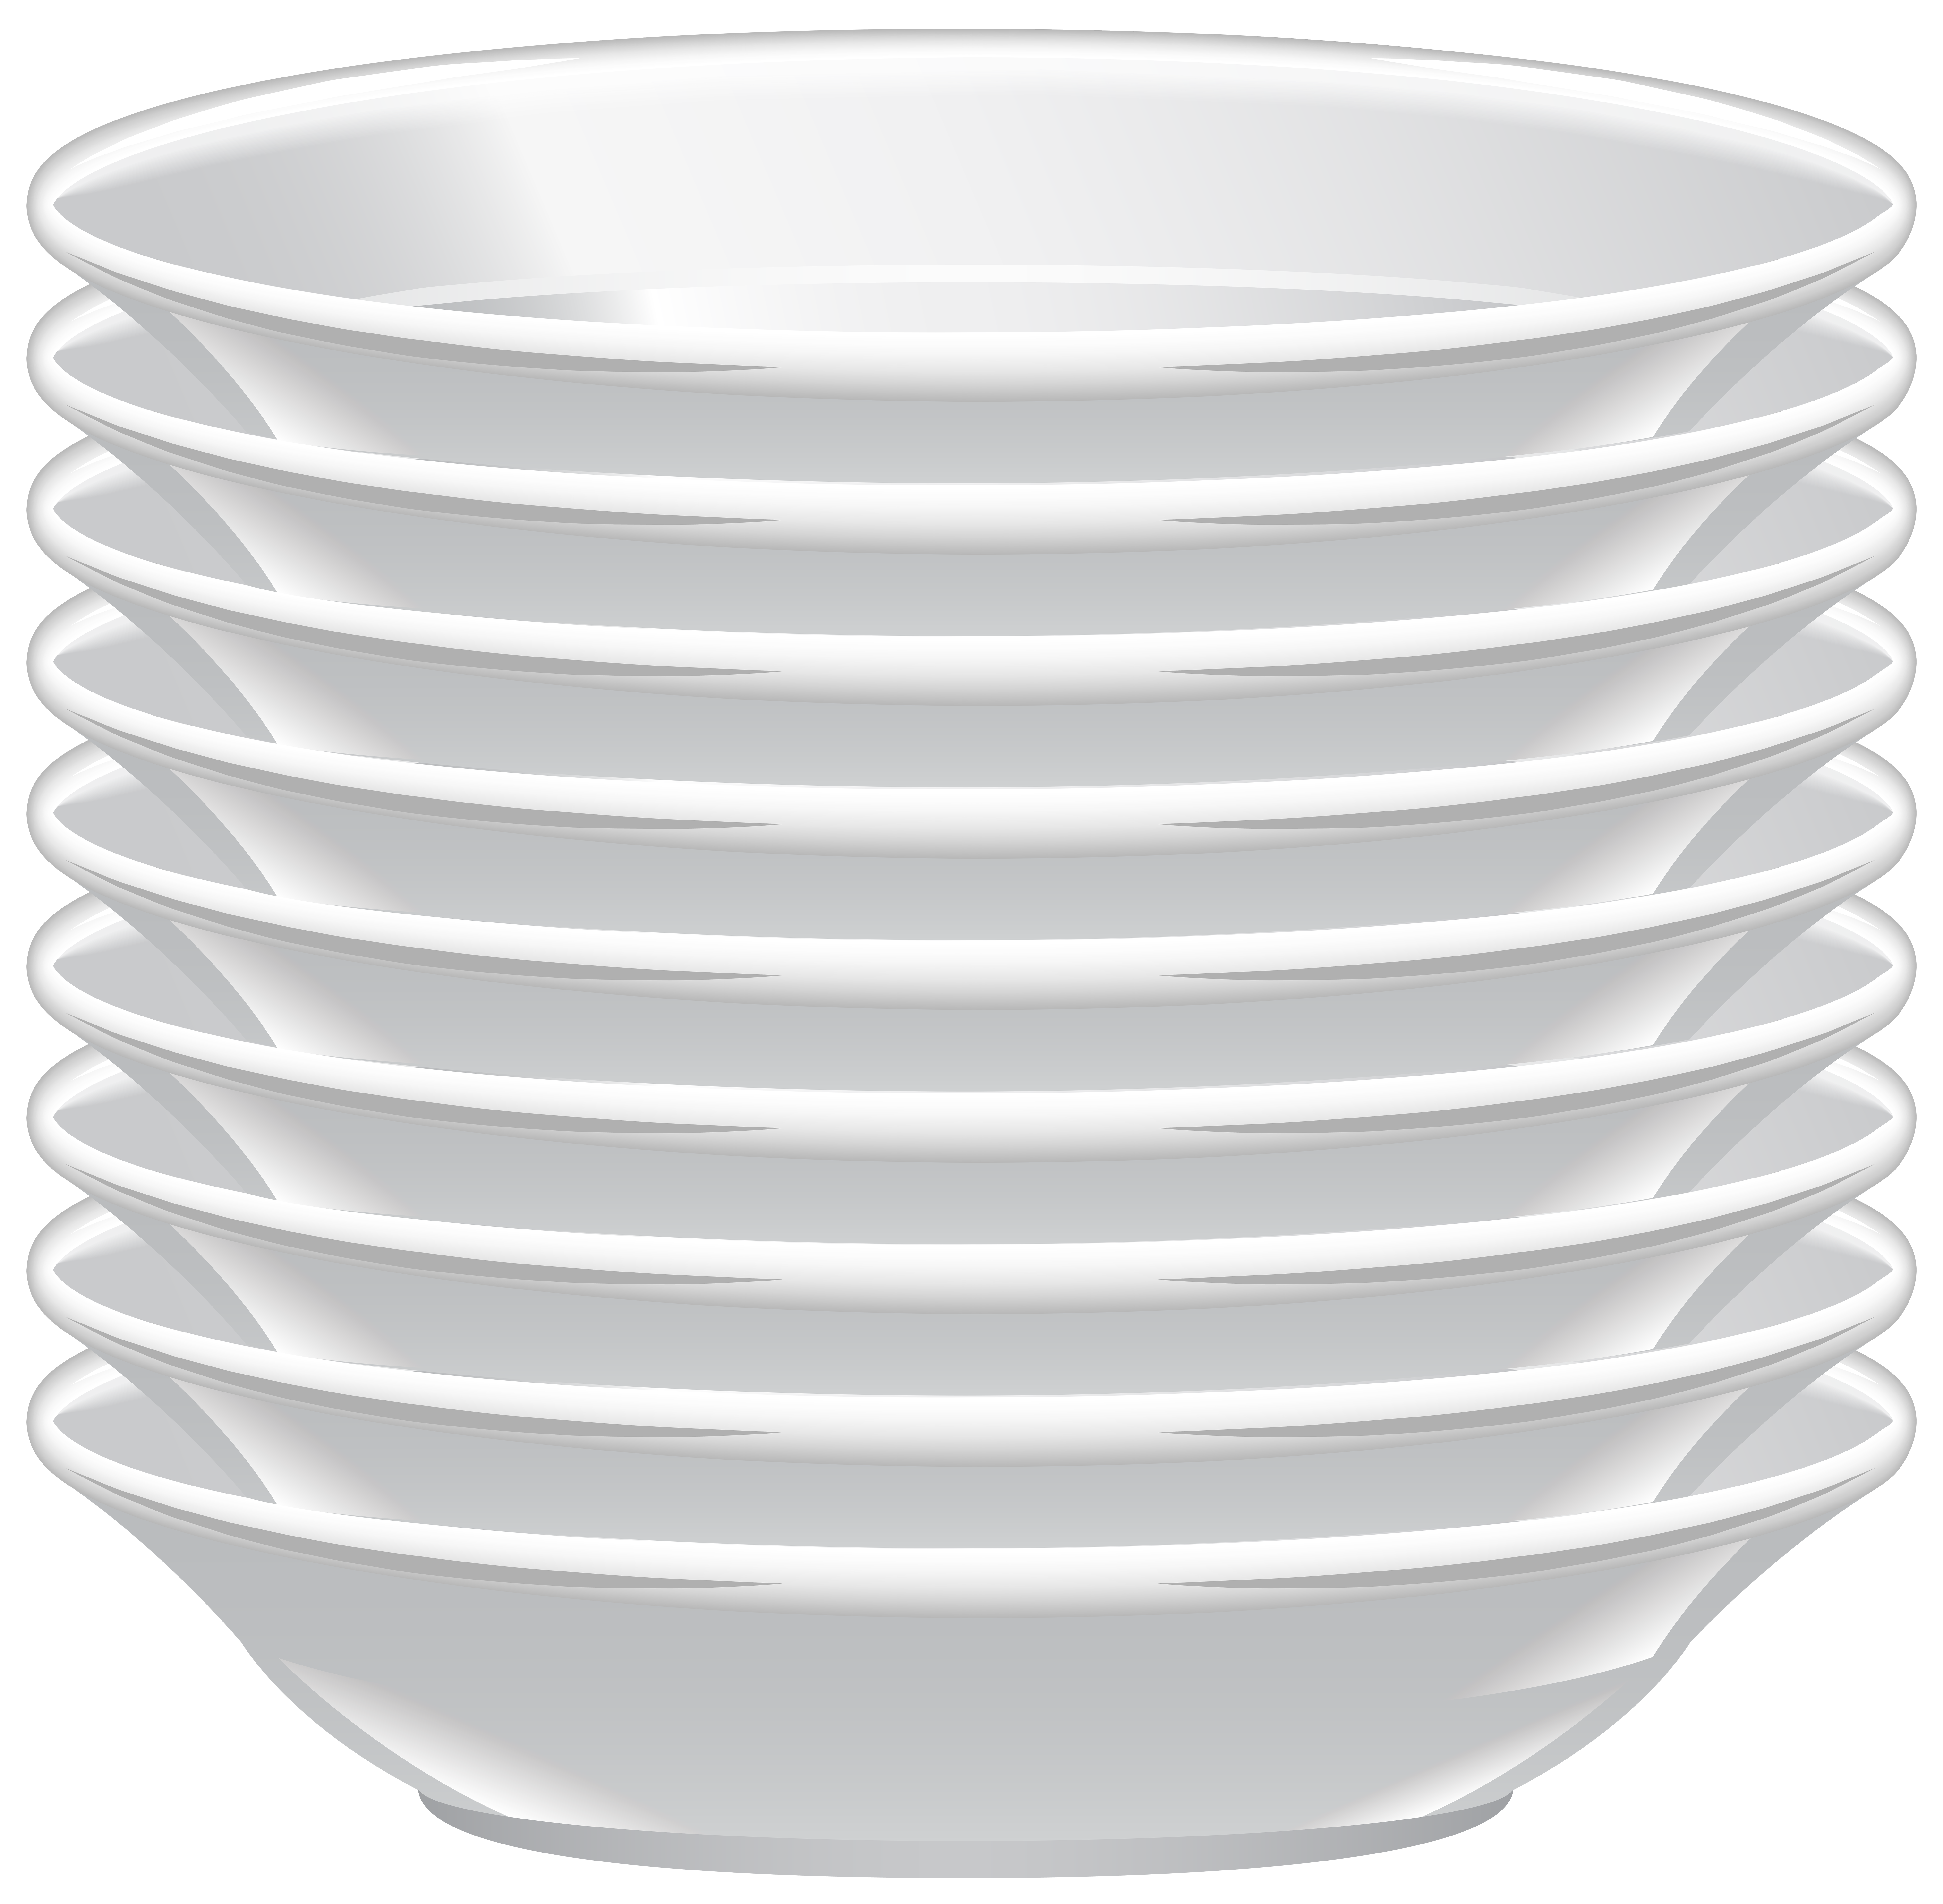 Bowl with money under it clipart png freeuse stock Soup Plates PNG Clip Art - Best WEB Clipart png freeuse stock